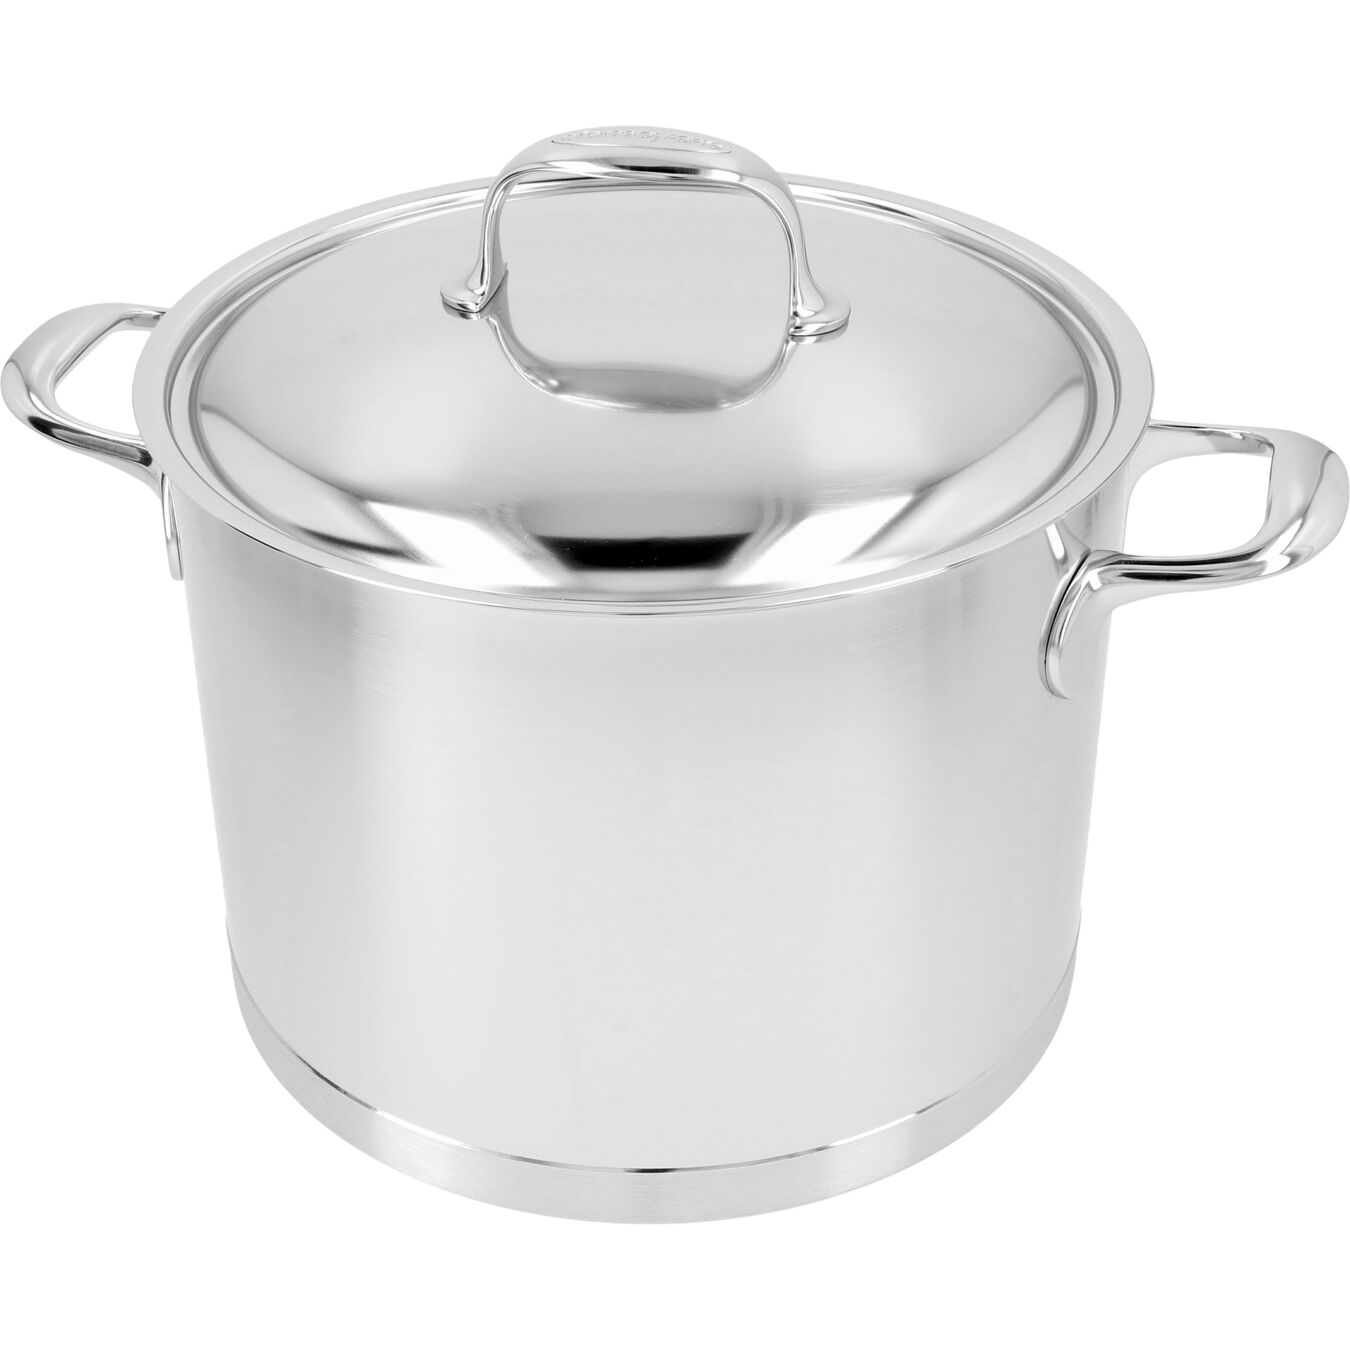 8.5 qt Stock pot with lid, 18/10 Stainless Steel ,,large 6